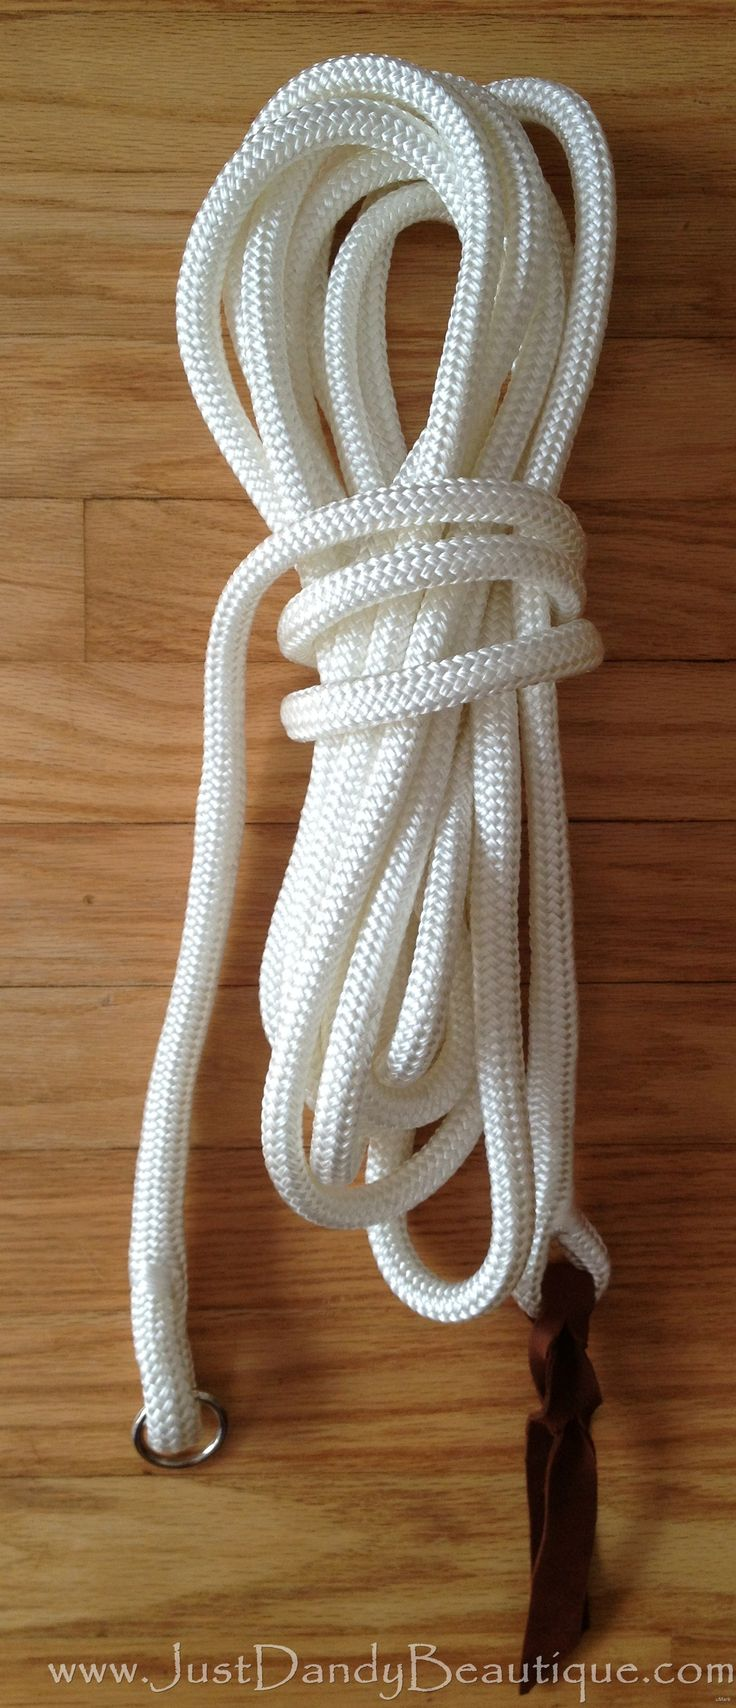 Hand spliced, Polyester Horse Longe Line.  Hardware Optional.  We hand splice our own longe lines. Our longe lines are 22′ long and can be used with any of the clinician training programs.      Made from 1/2″ polyester marine grade yacht line. This rope is soft enough on the hands, yet UV resistant and will take years of abuse.      Includes our hand cut leather bleeding heart knot popper.  (Need a replacement popper? We sell those too!)    Buy online at www.justdandybeautique.com! #horse…